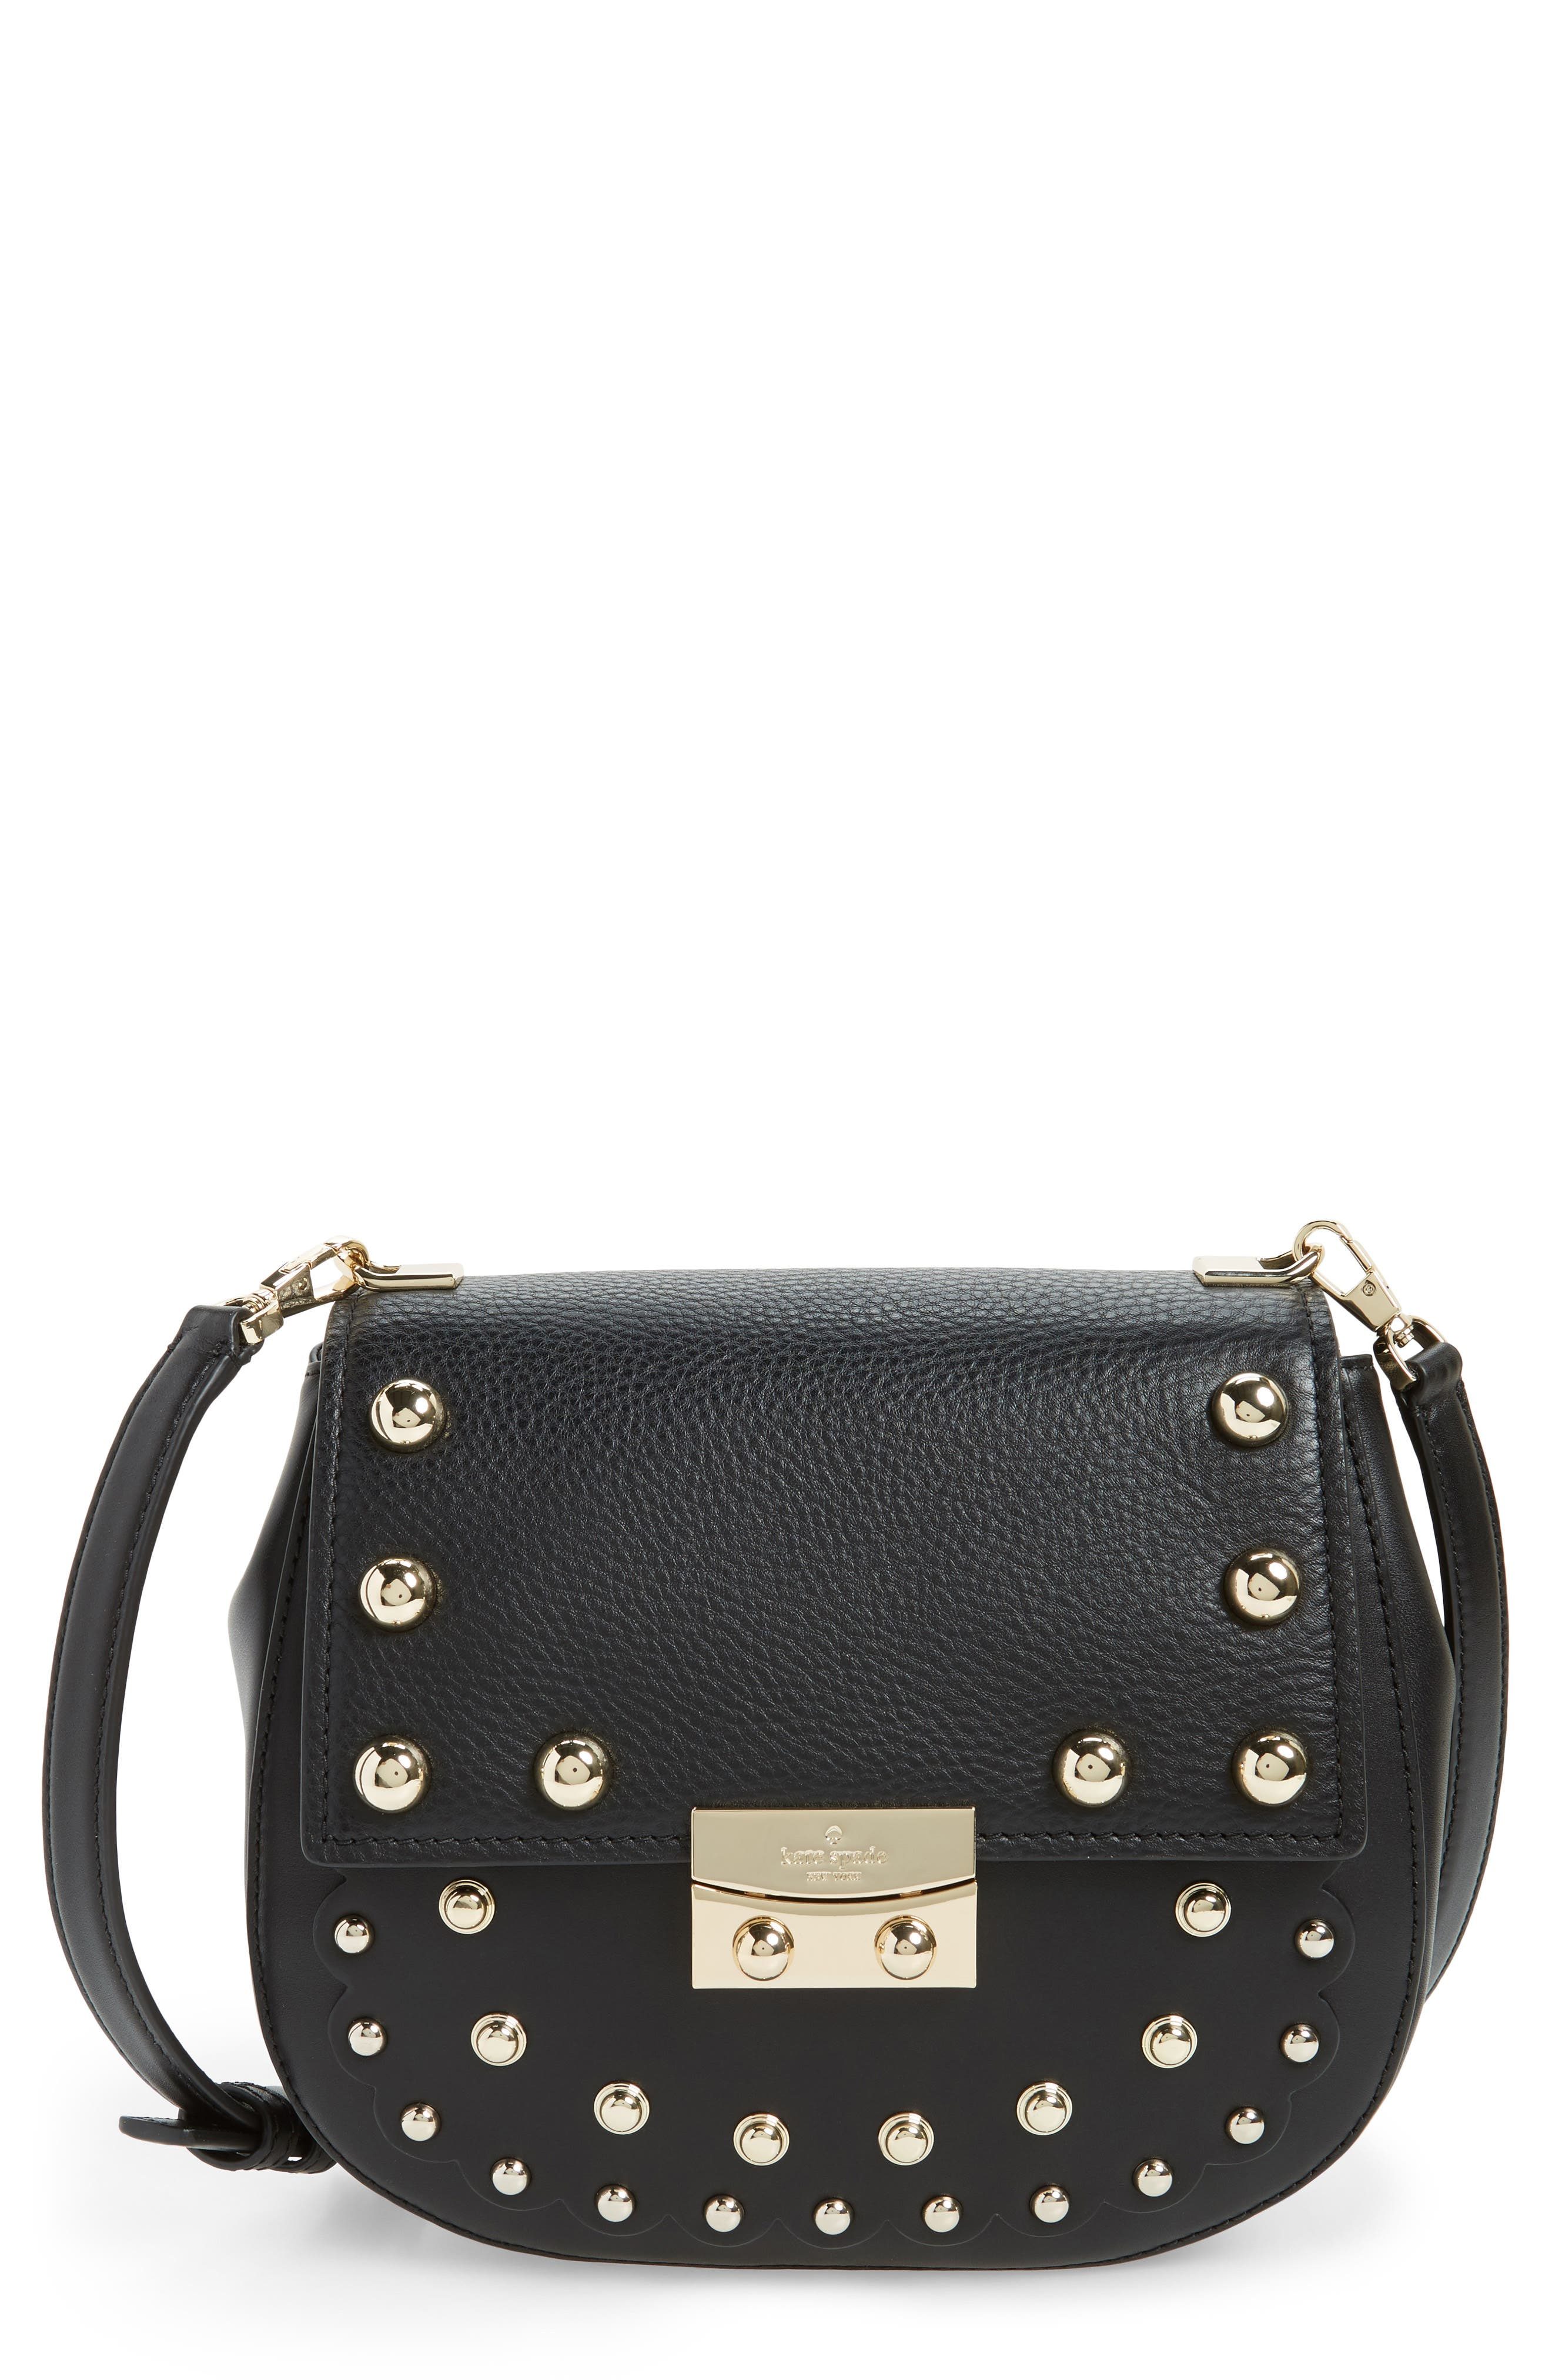 Main Image - kate spade new york madison stewart street - byrdie studded leather crossbody bag